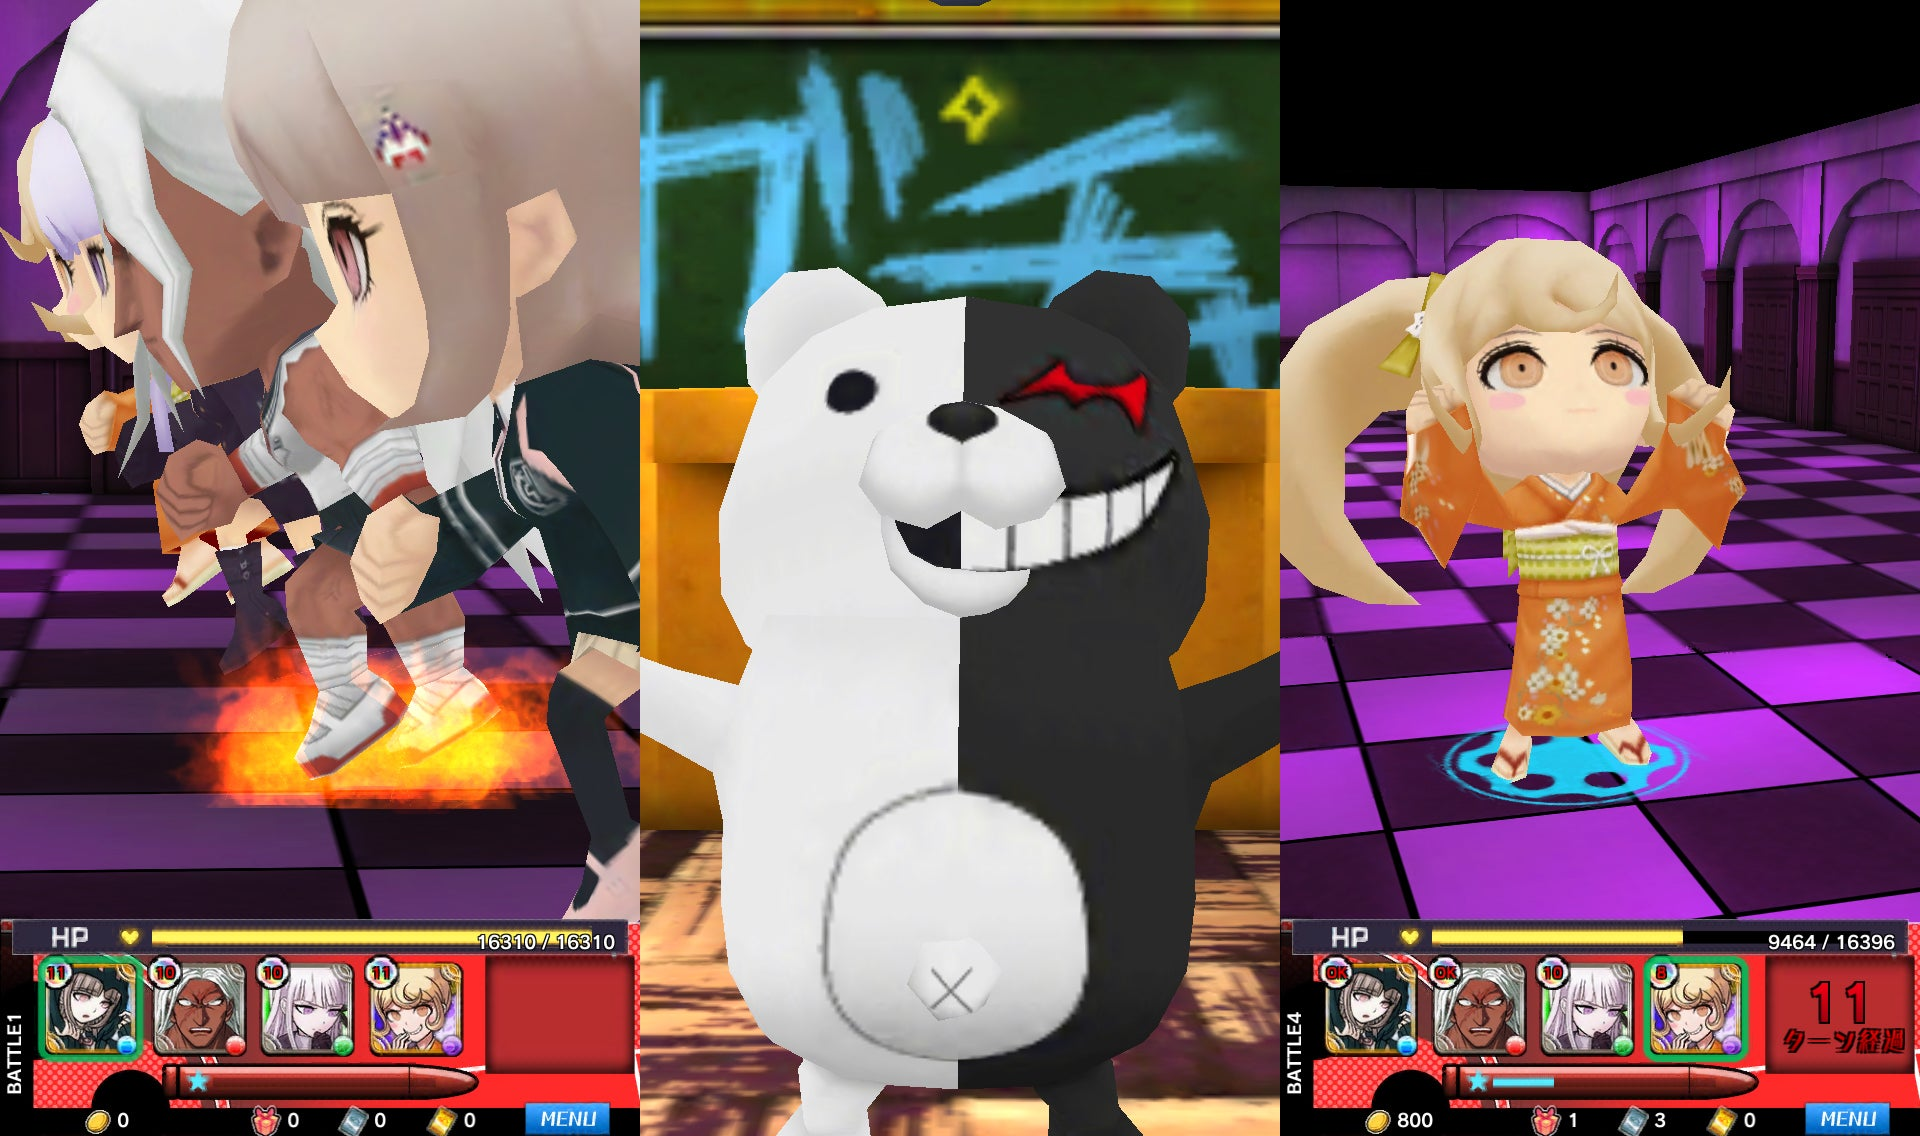 The New Danganronpa Smartphone Game is Basically Billiards